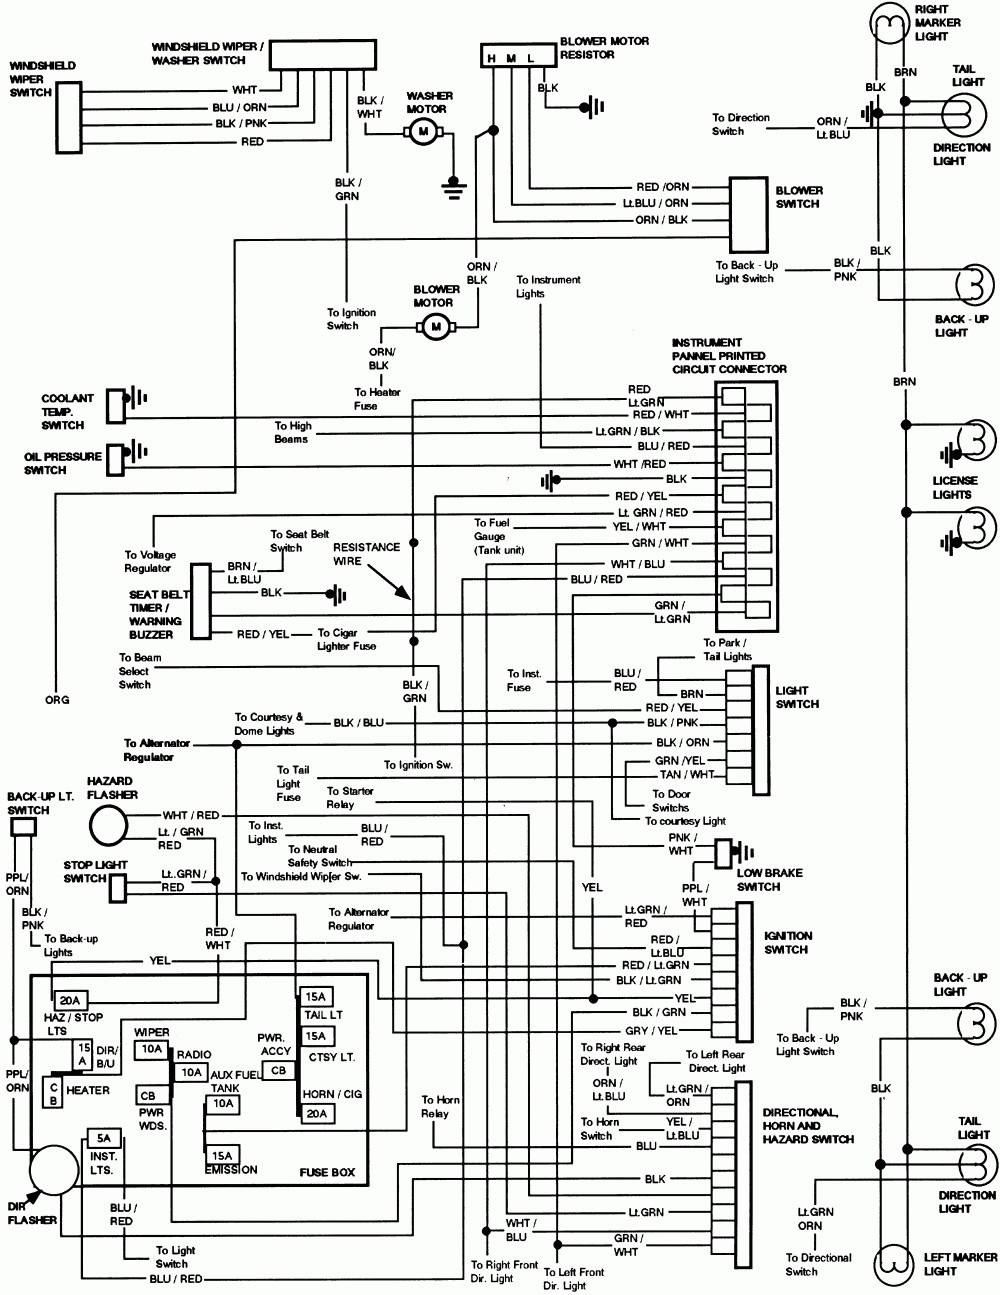 medium resolution of 2008 ford e350 wiring diagram free download wiring diagram list 07 ford e 350 stop lamp wiring diagram